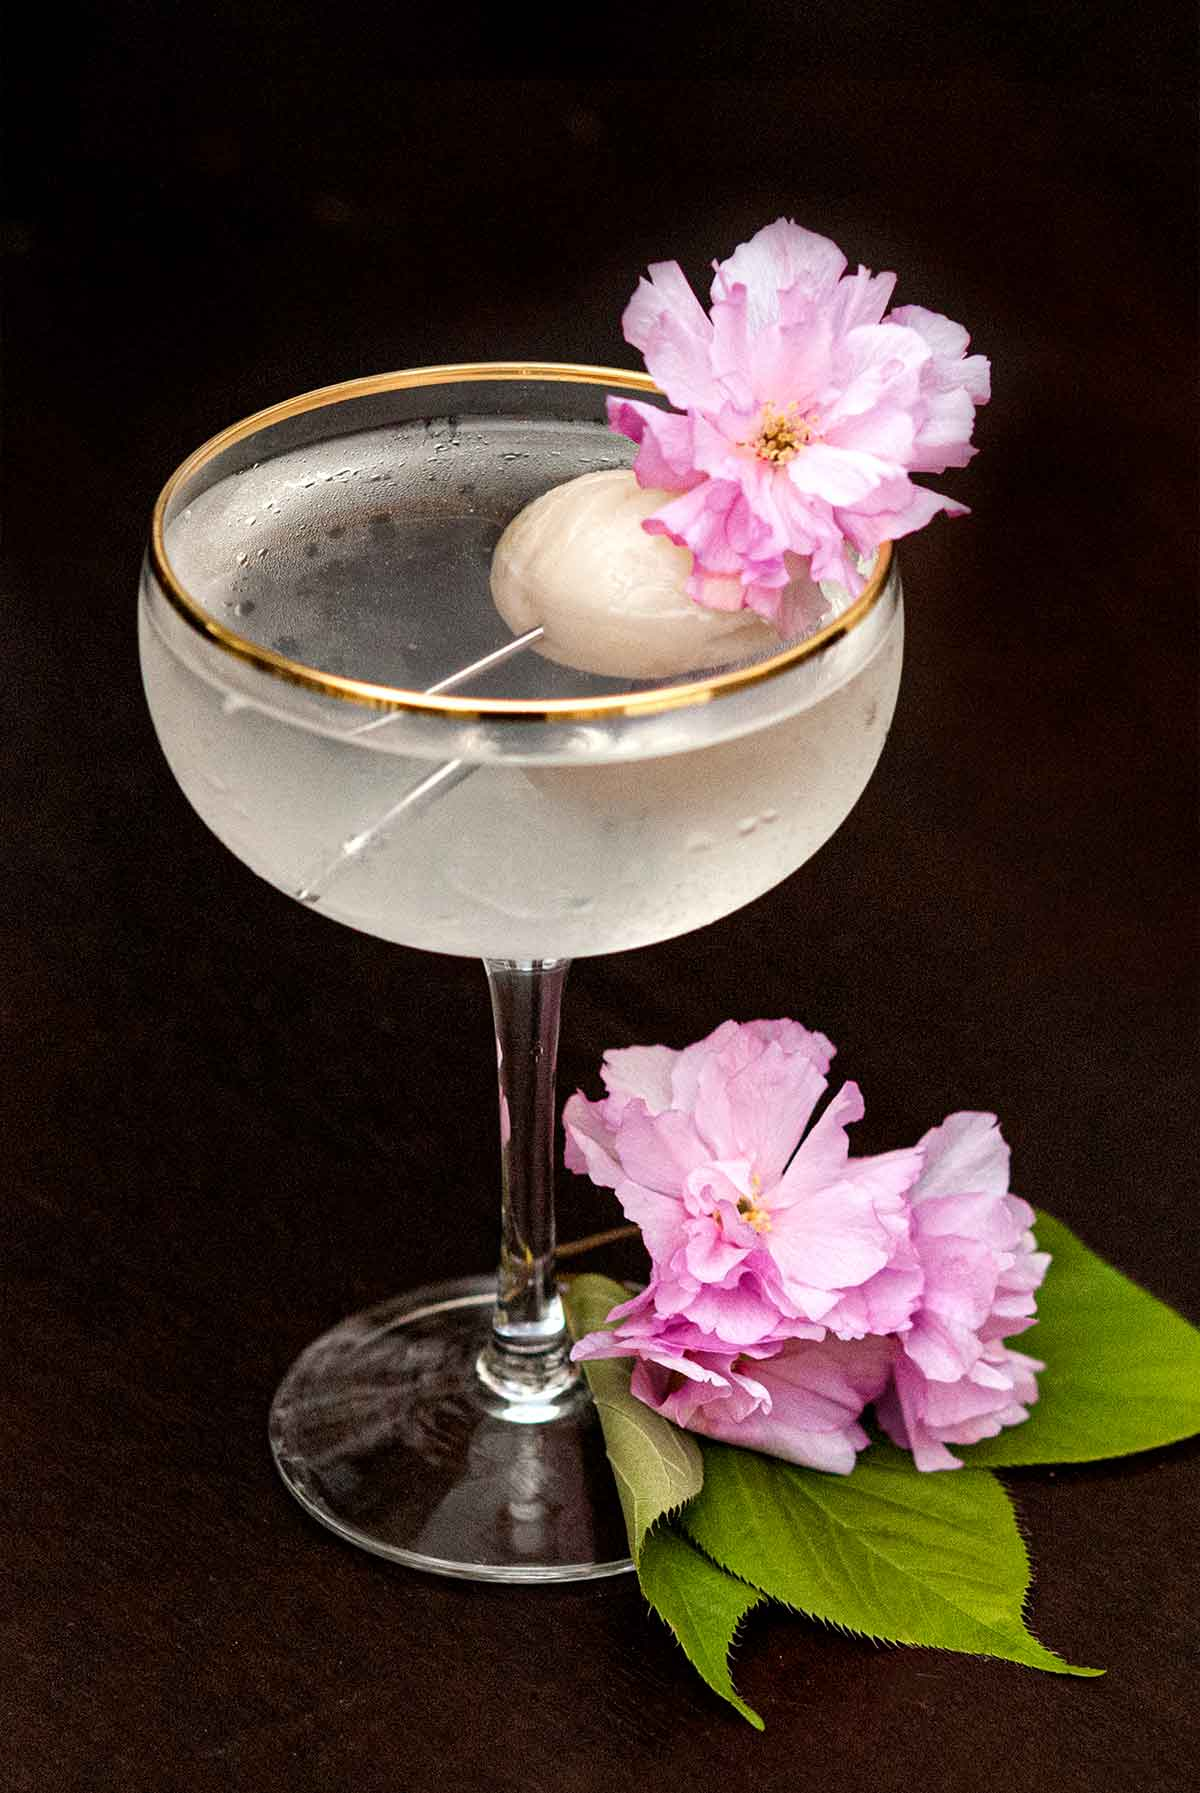 A cocktail garnished with a lychee and cherry blossom flowers, with flowers and a few leaves at its base.